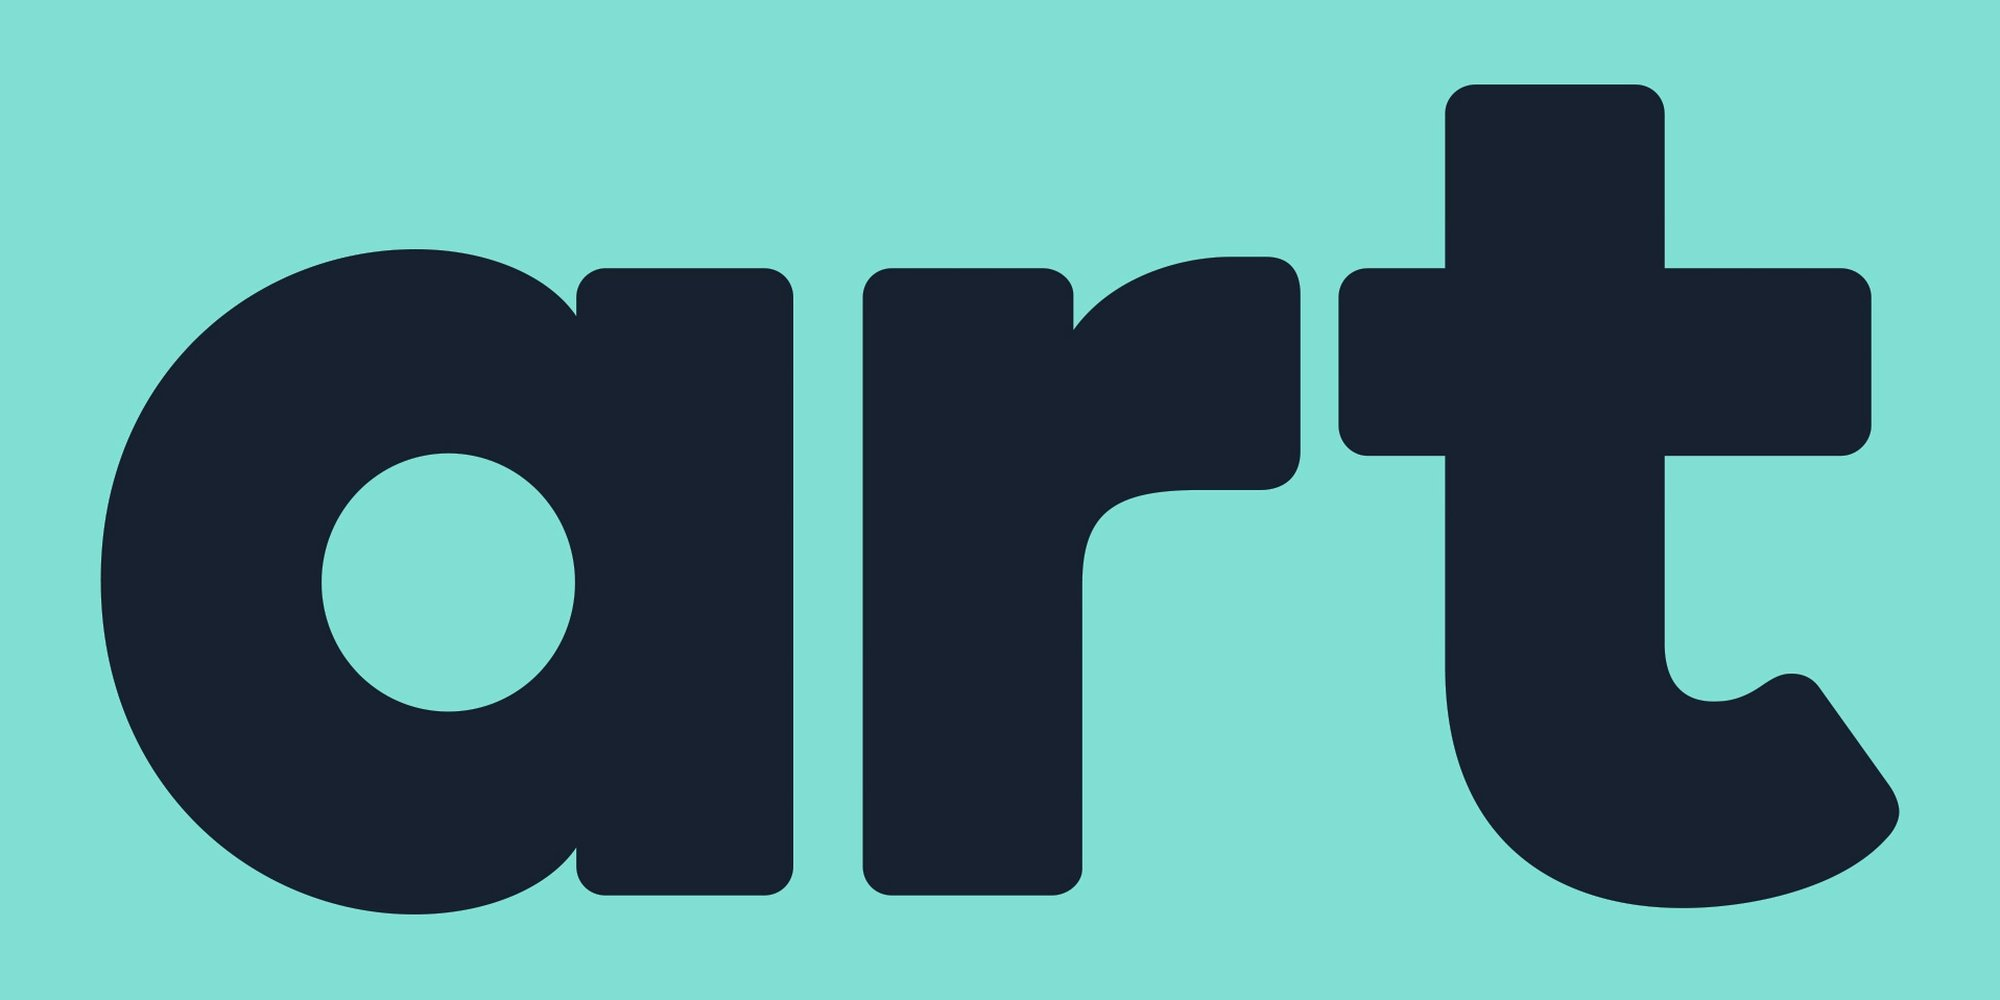 Art isn't working. But we're here to change that. Artfinder: The Movie